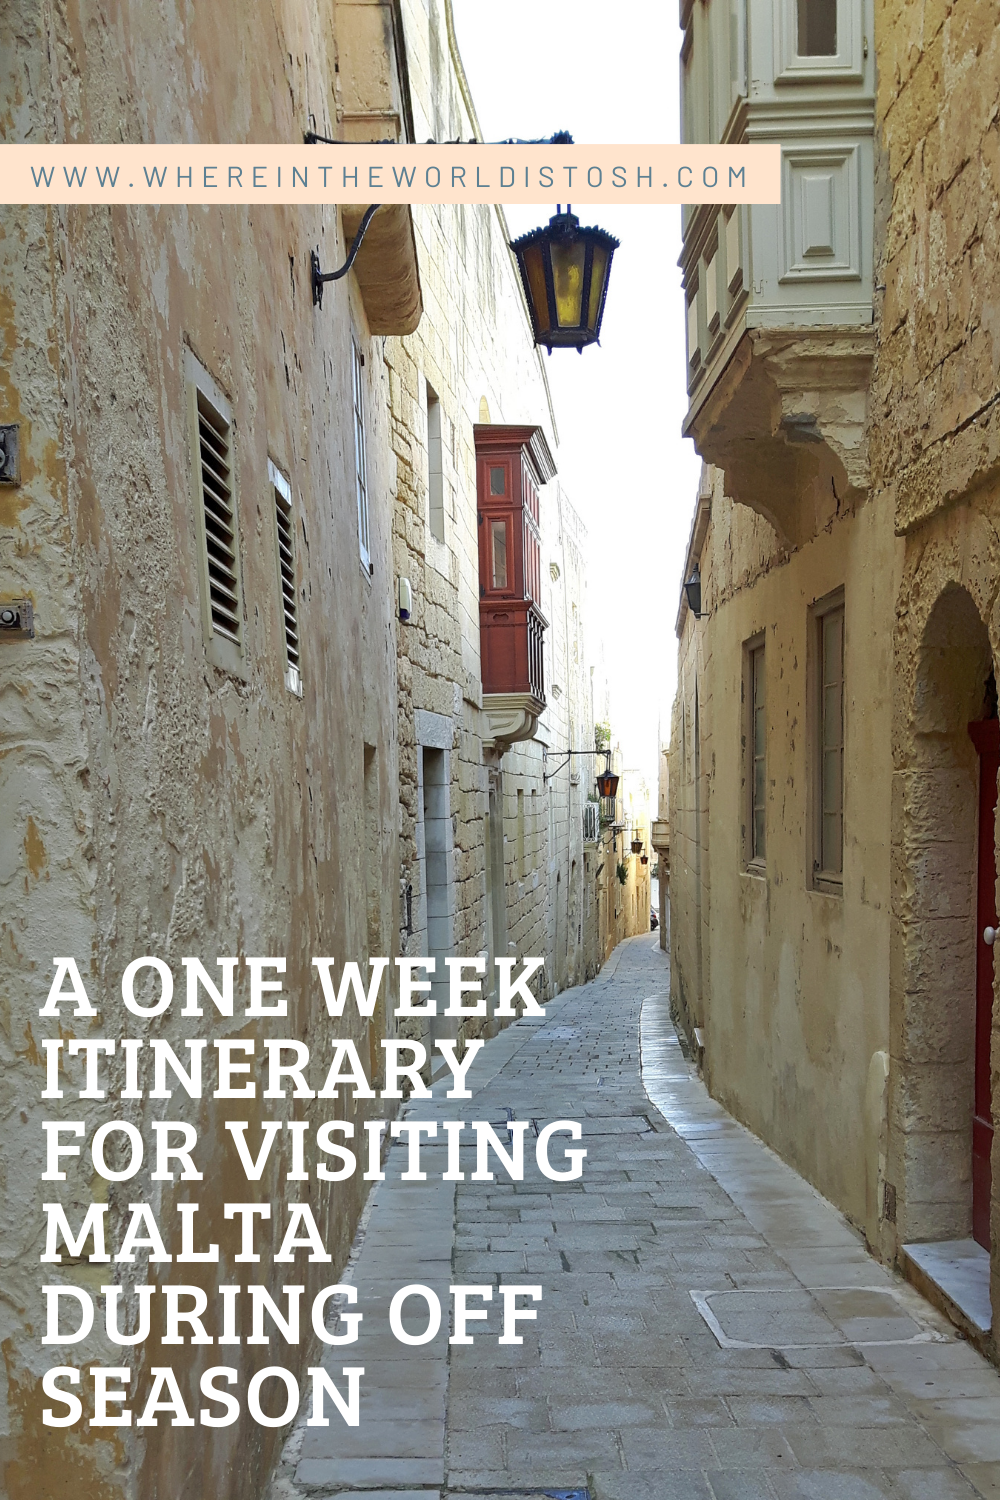 One Week Itinerary For Malta In Off Season